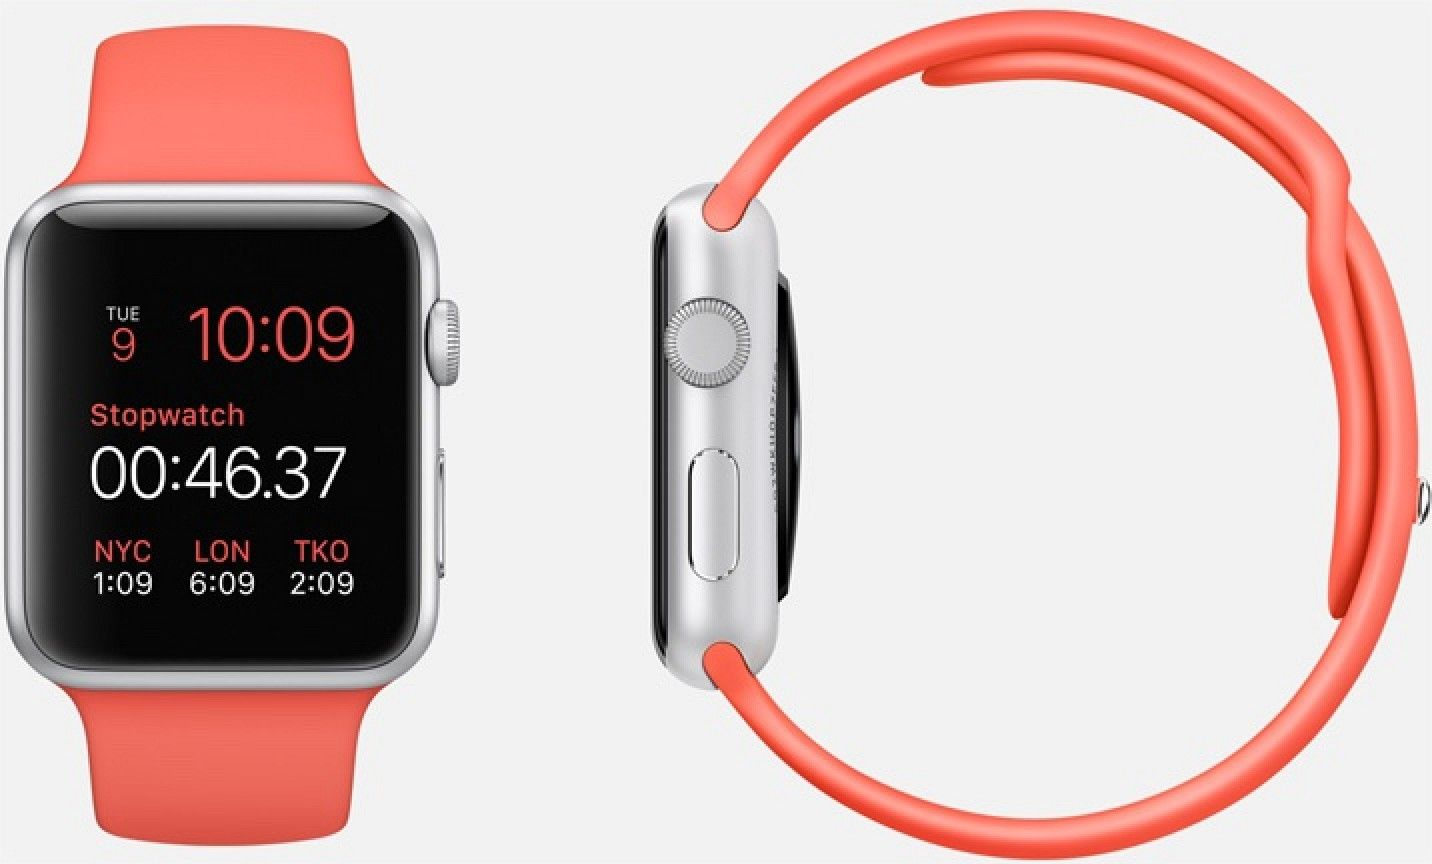 Tim Cook Our Objective With Apple Watch Is to Change the